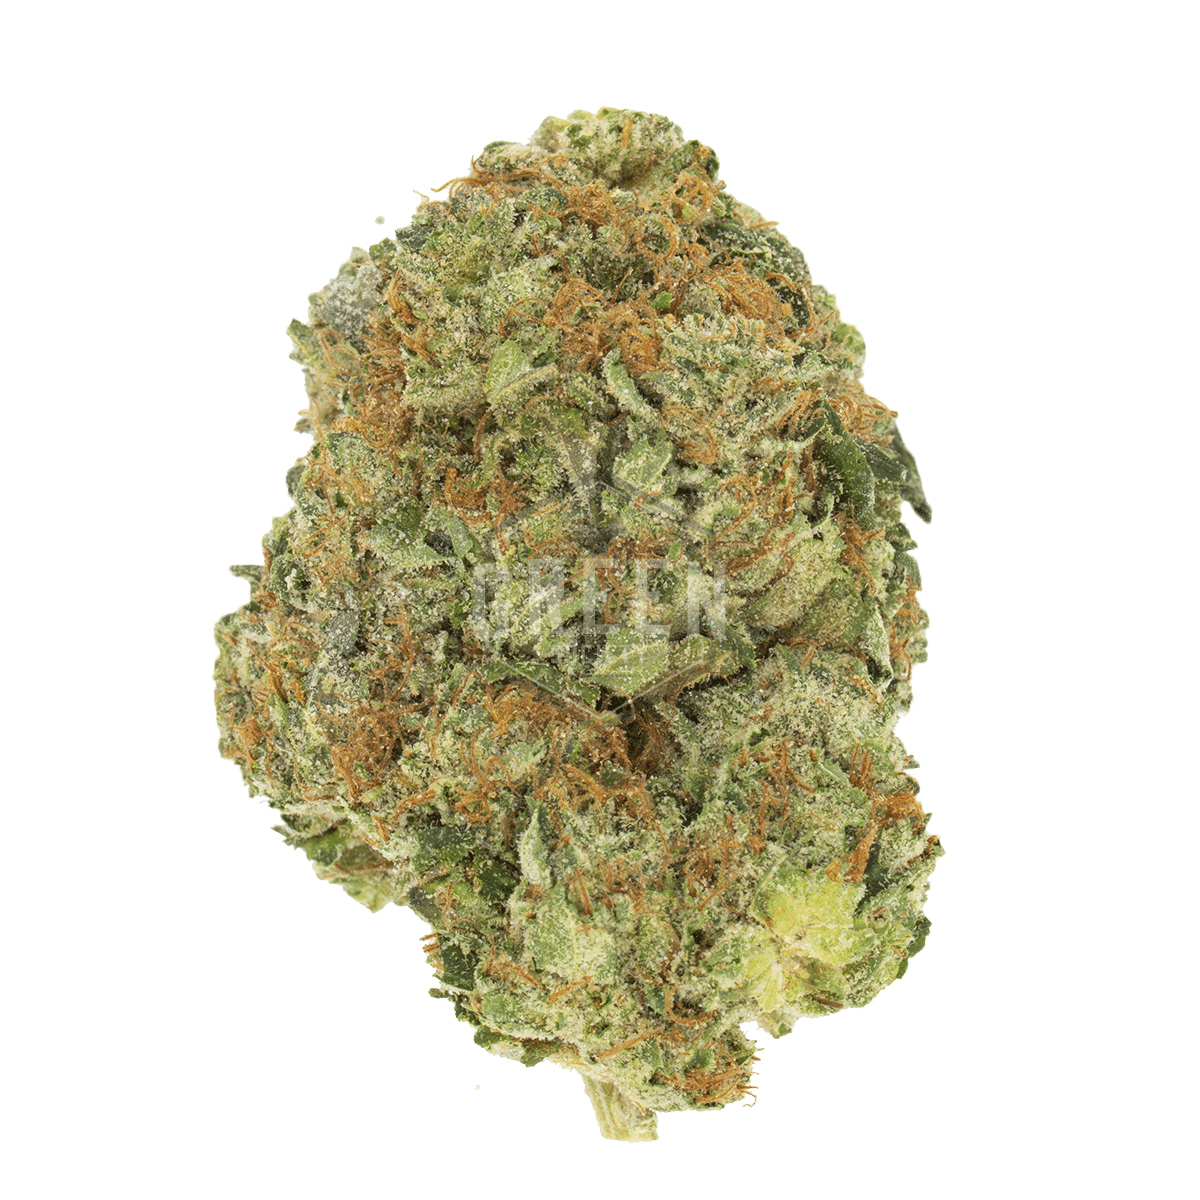 Deadhead OG by Green Society - Image © 2018 Green Society. All Rights Reserved.